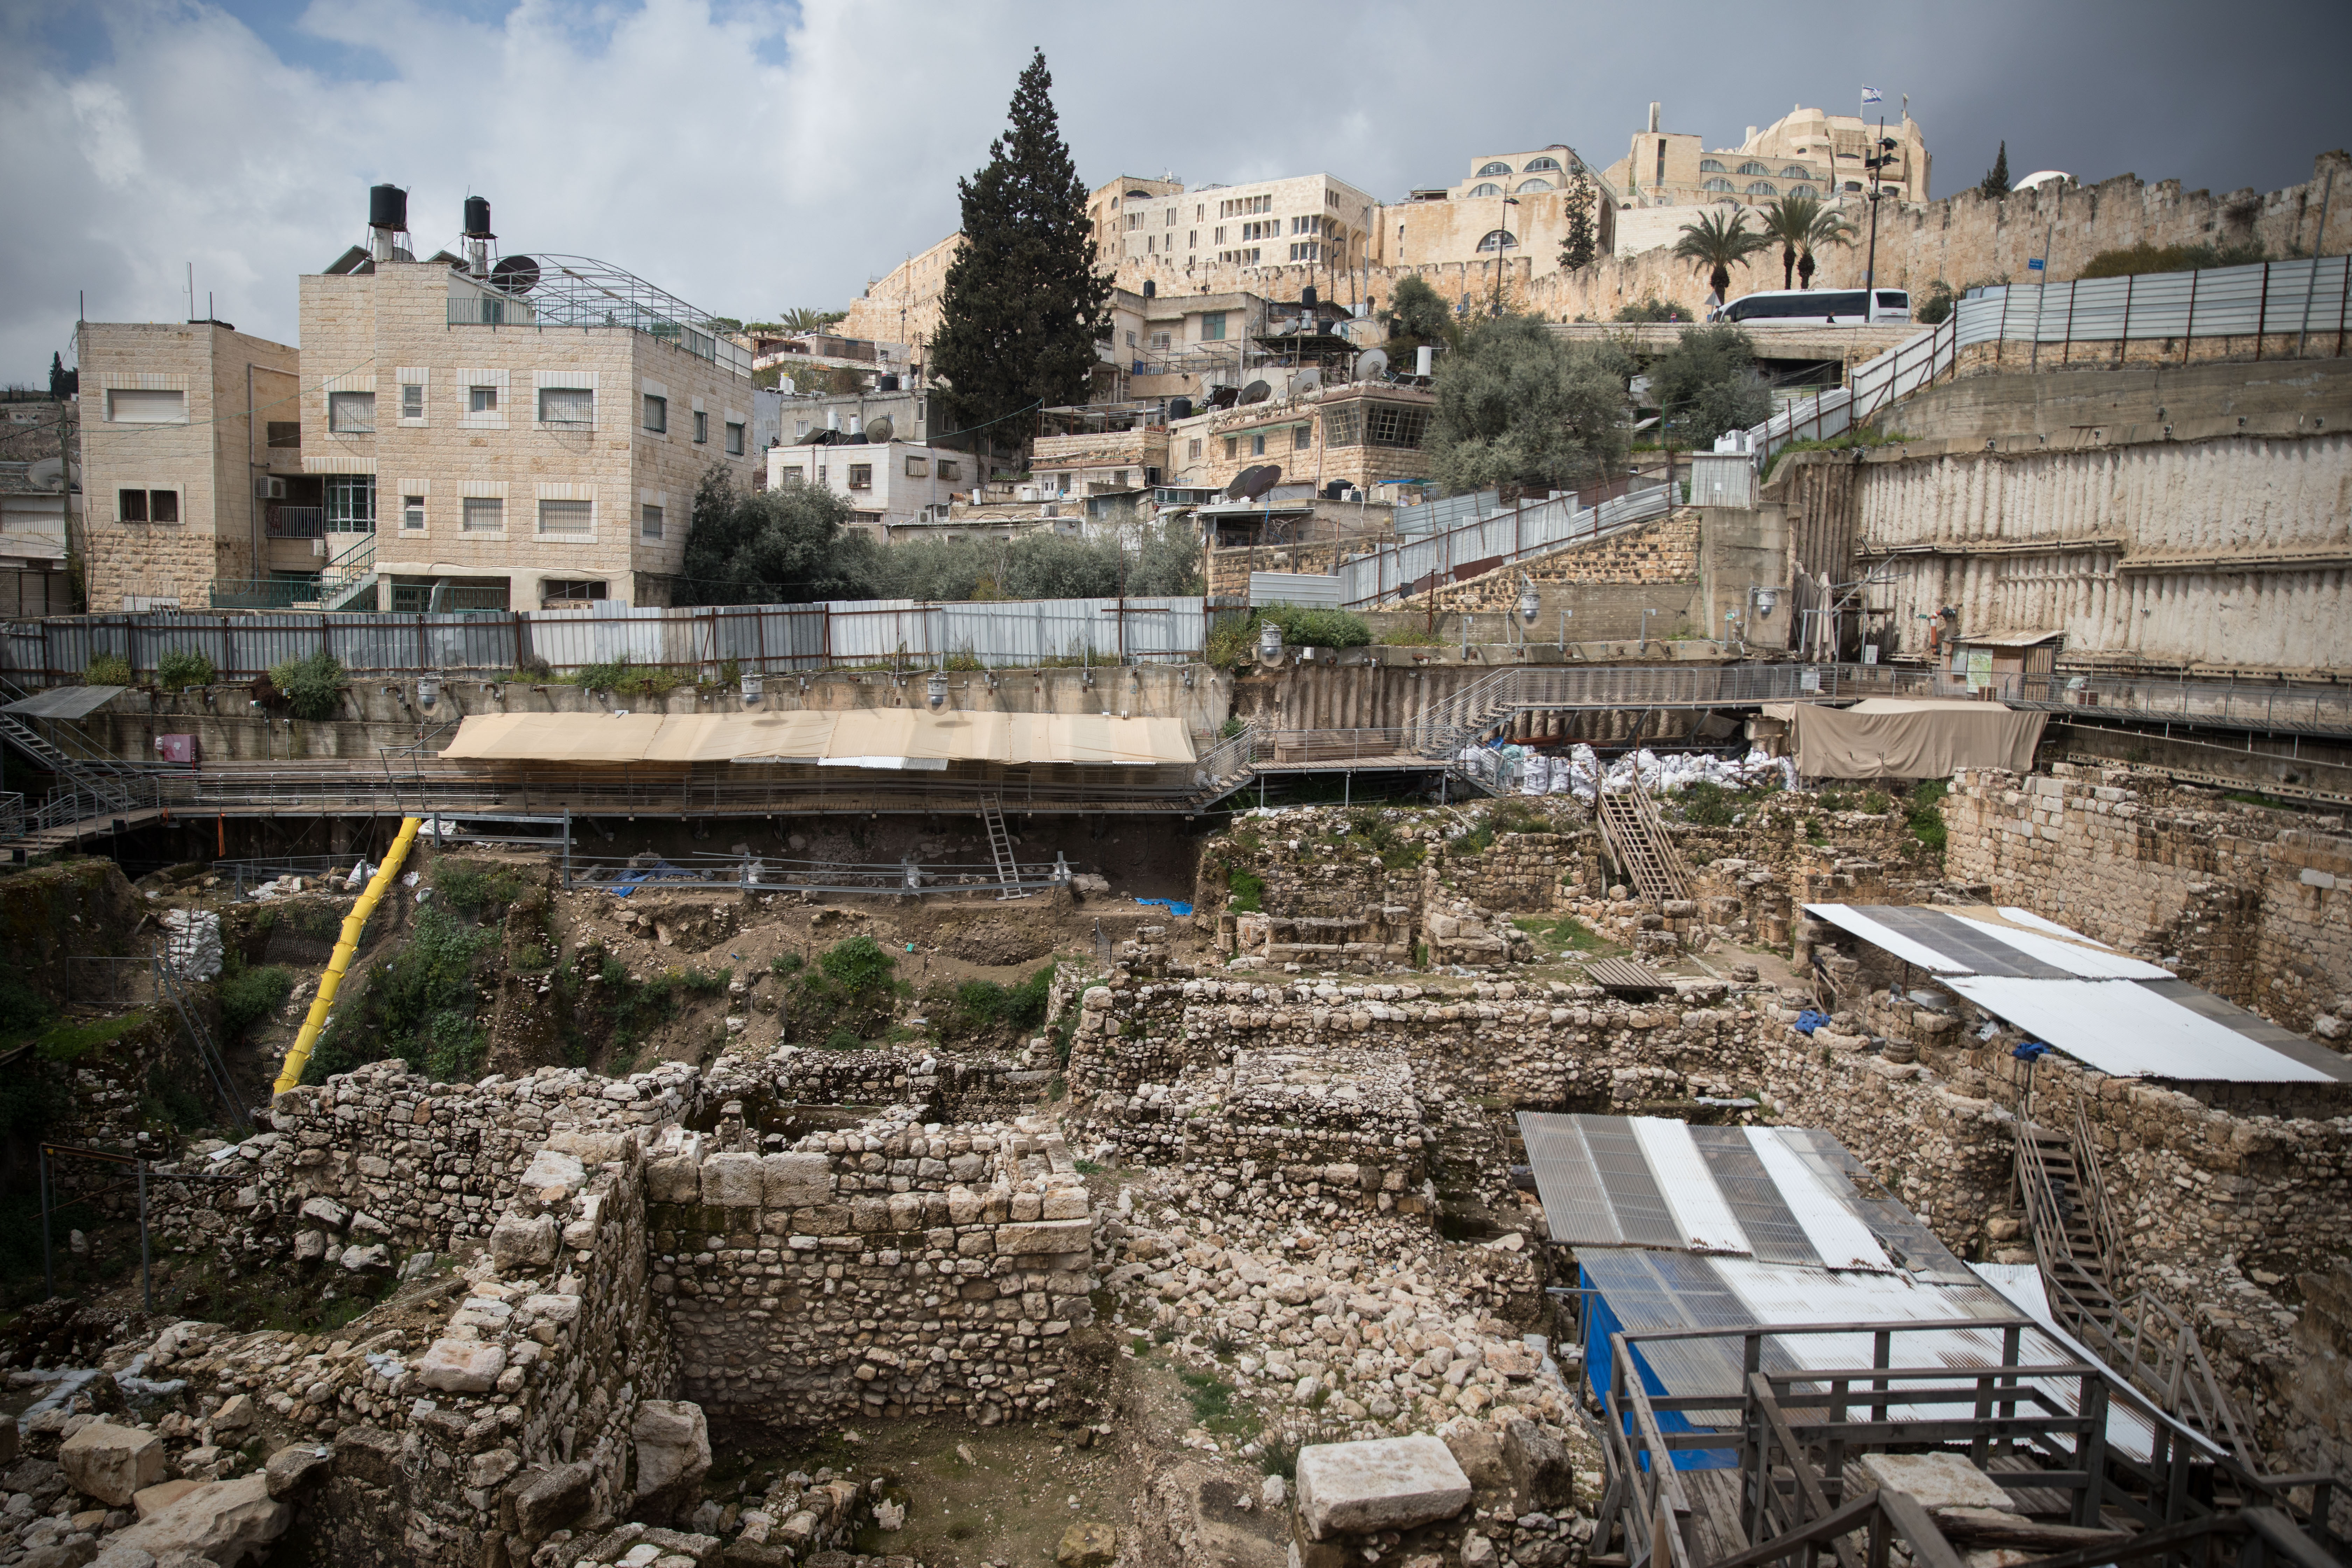 The City of David and the problem with dividing Jerusalem | JNS org